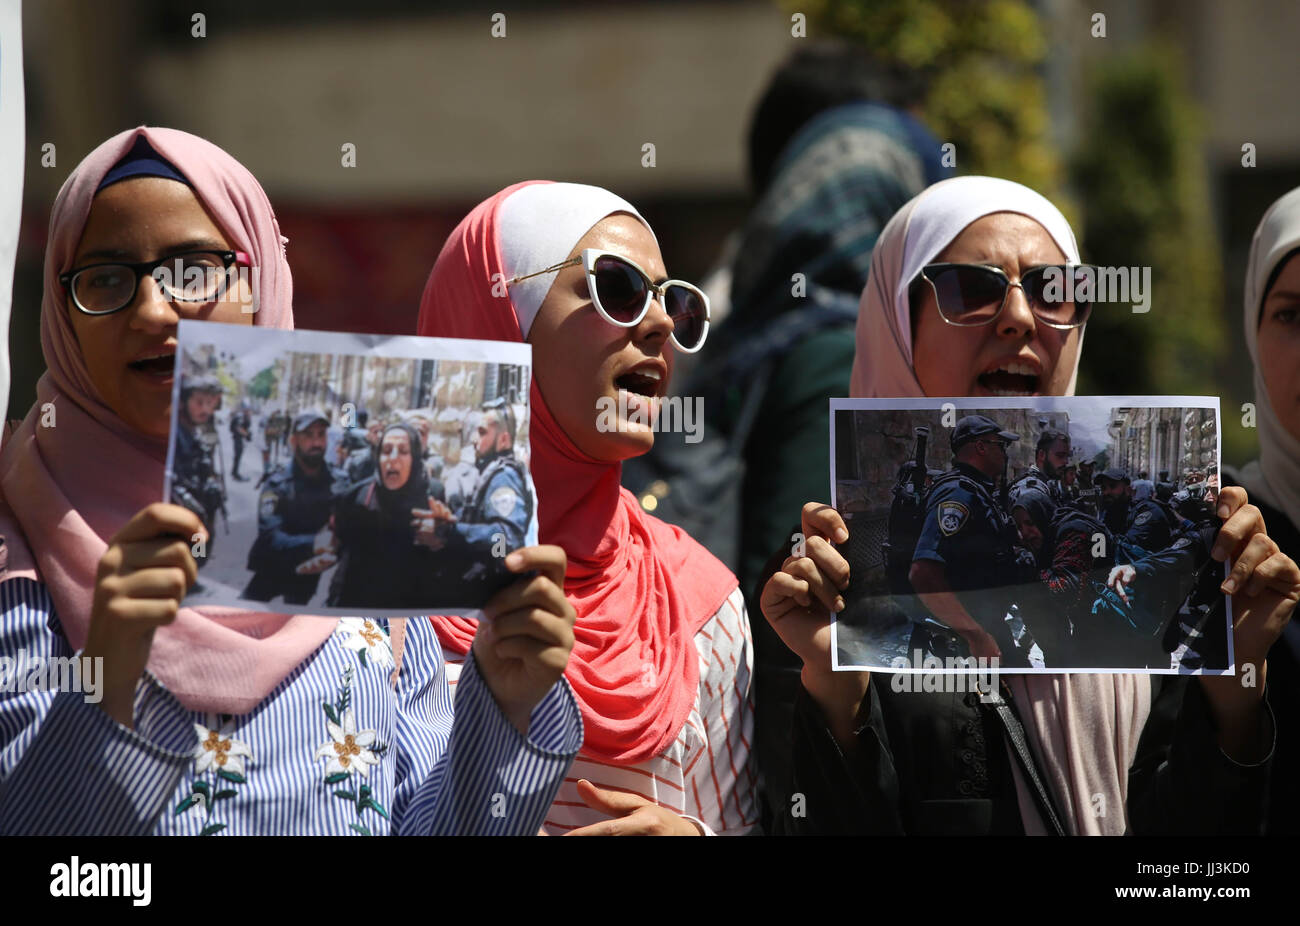 (170718) -- NABLUS, July 18, 2017 (Xinhua) -- Palestinian women hold pictures of Israeli soldiers attacking women - Stock Image